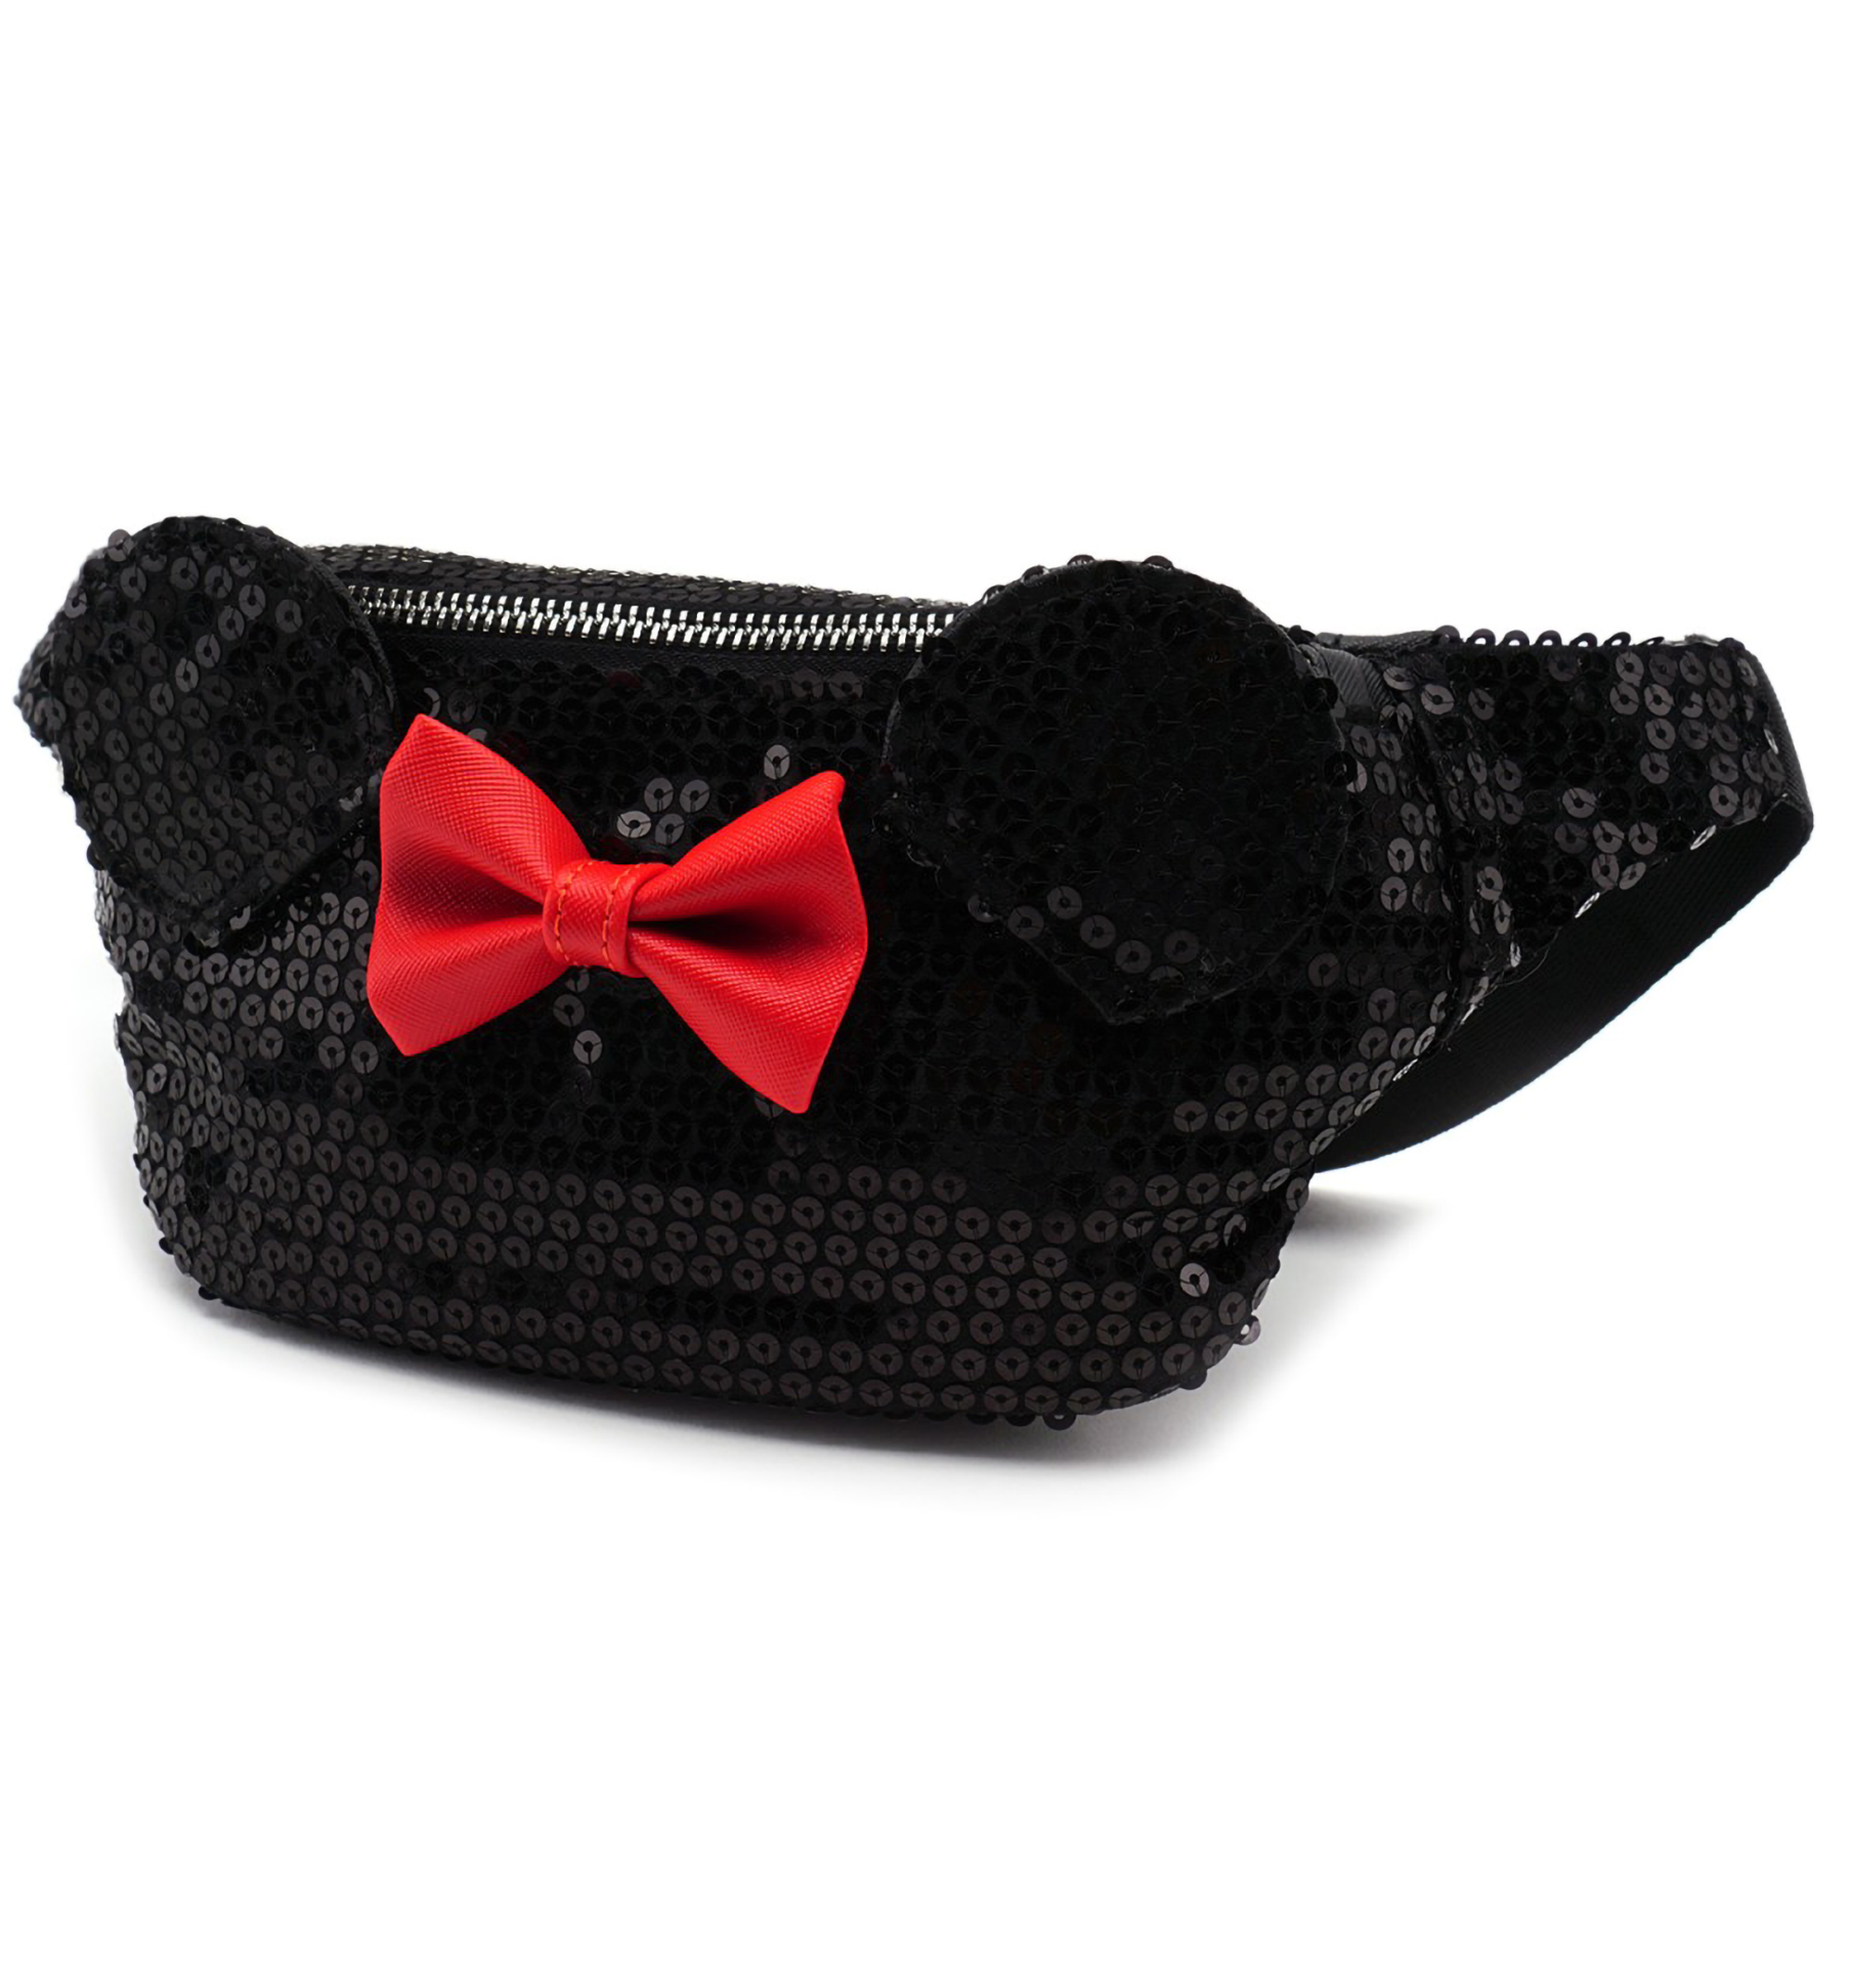 0b43f4cf353 Loungefly x Disney Minnie Mouse Black Sequin Bumbag - Faux Saffiano  textured leather bum bag with sequin finish - Measures 17.5cm width